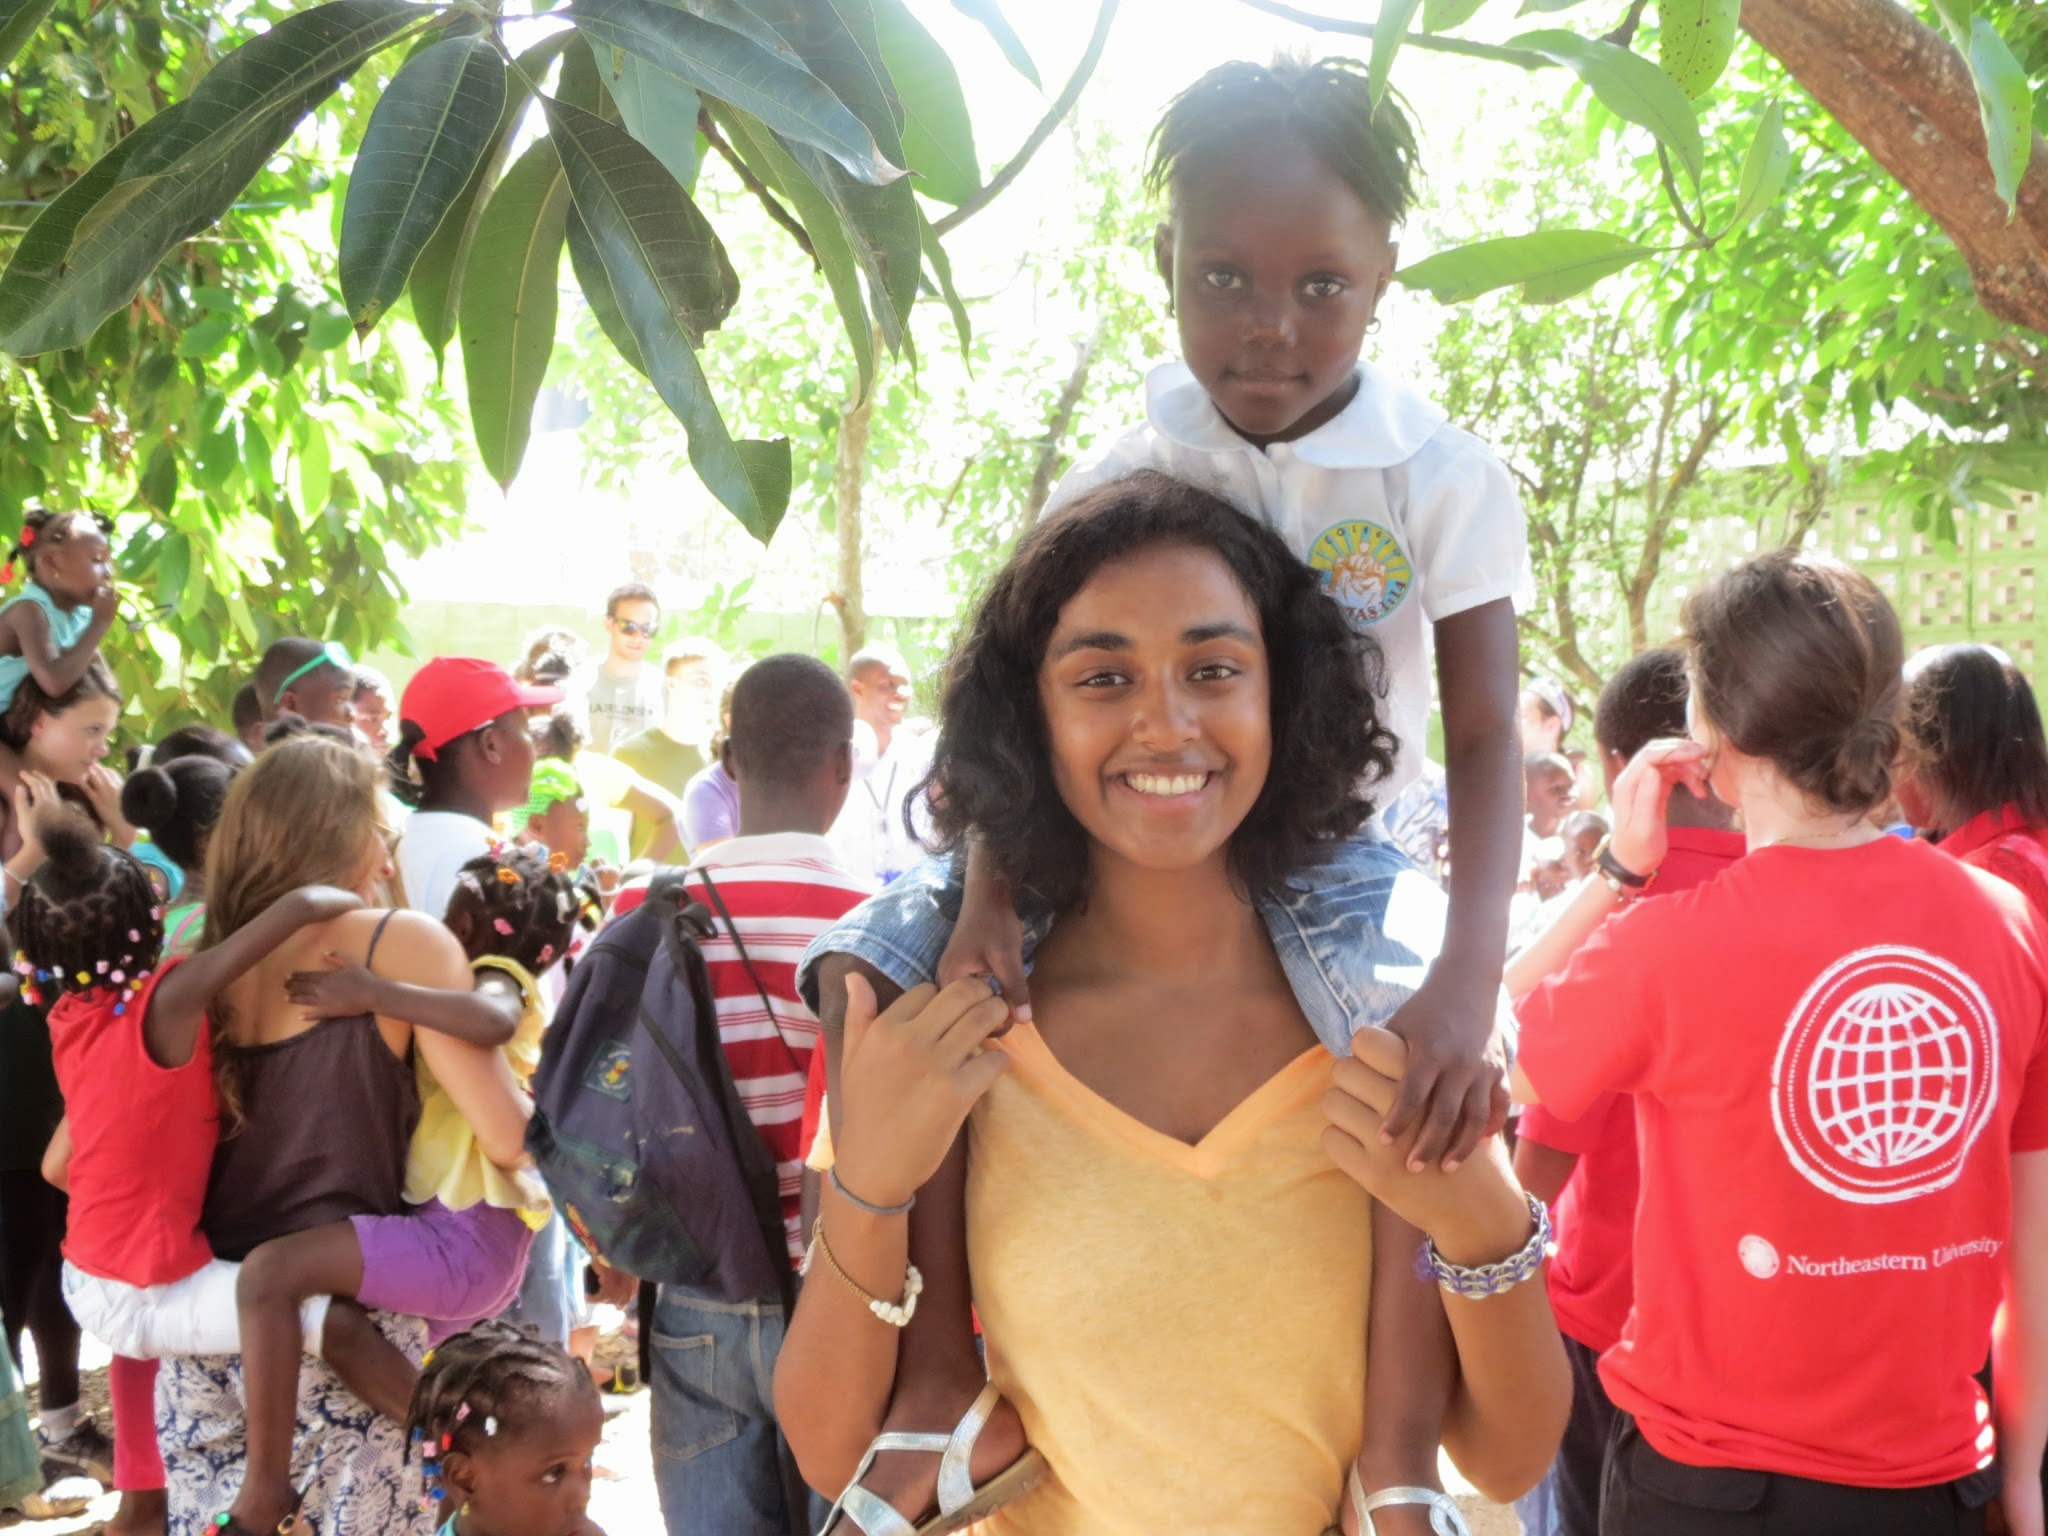 NU student Eesha Ramanujam at Project Esperanza, Dominican Republic in 2014.